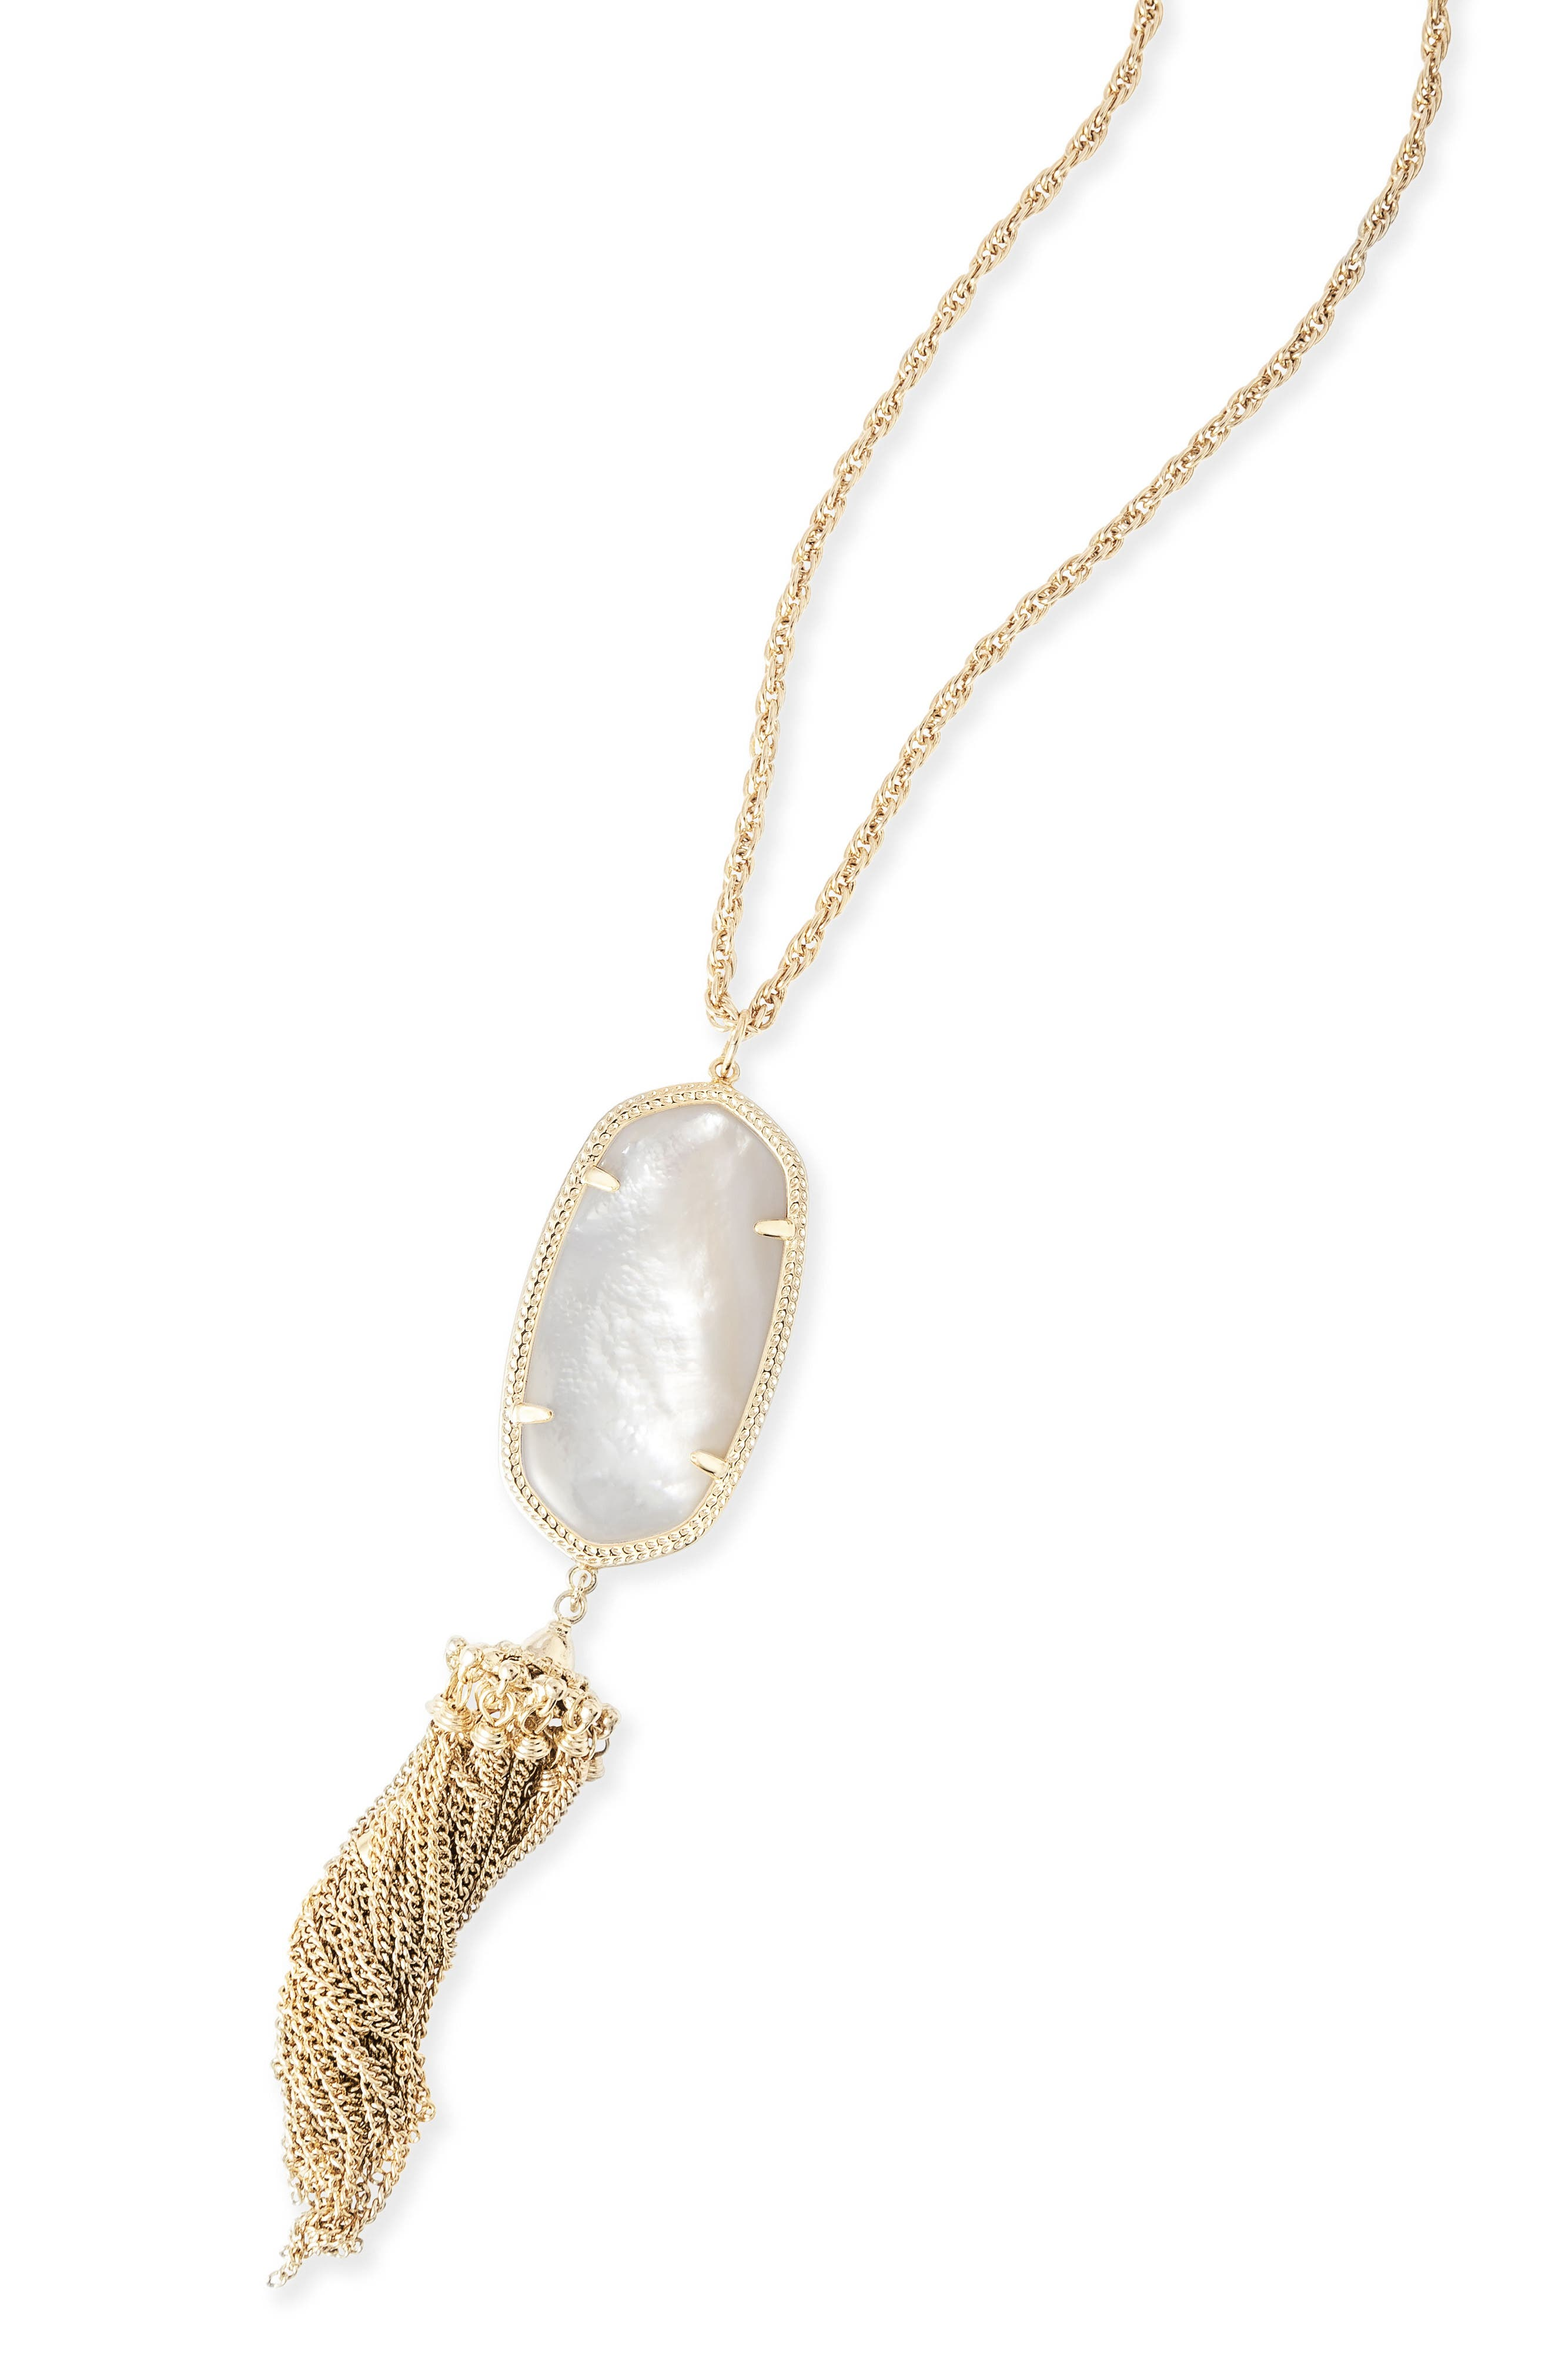 Rayne Stone Tassel Pendant Necklace,                             Alternate thumbnail 3, color,                             White Mother Of Pearl/ Gold